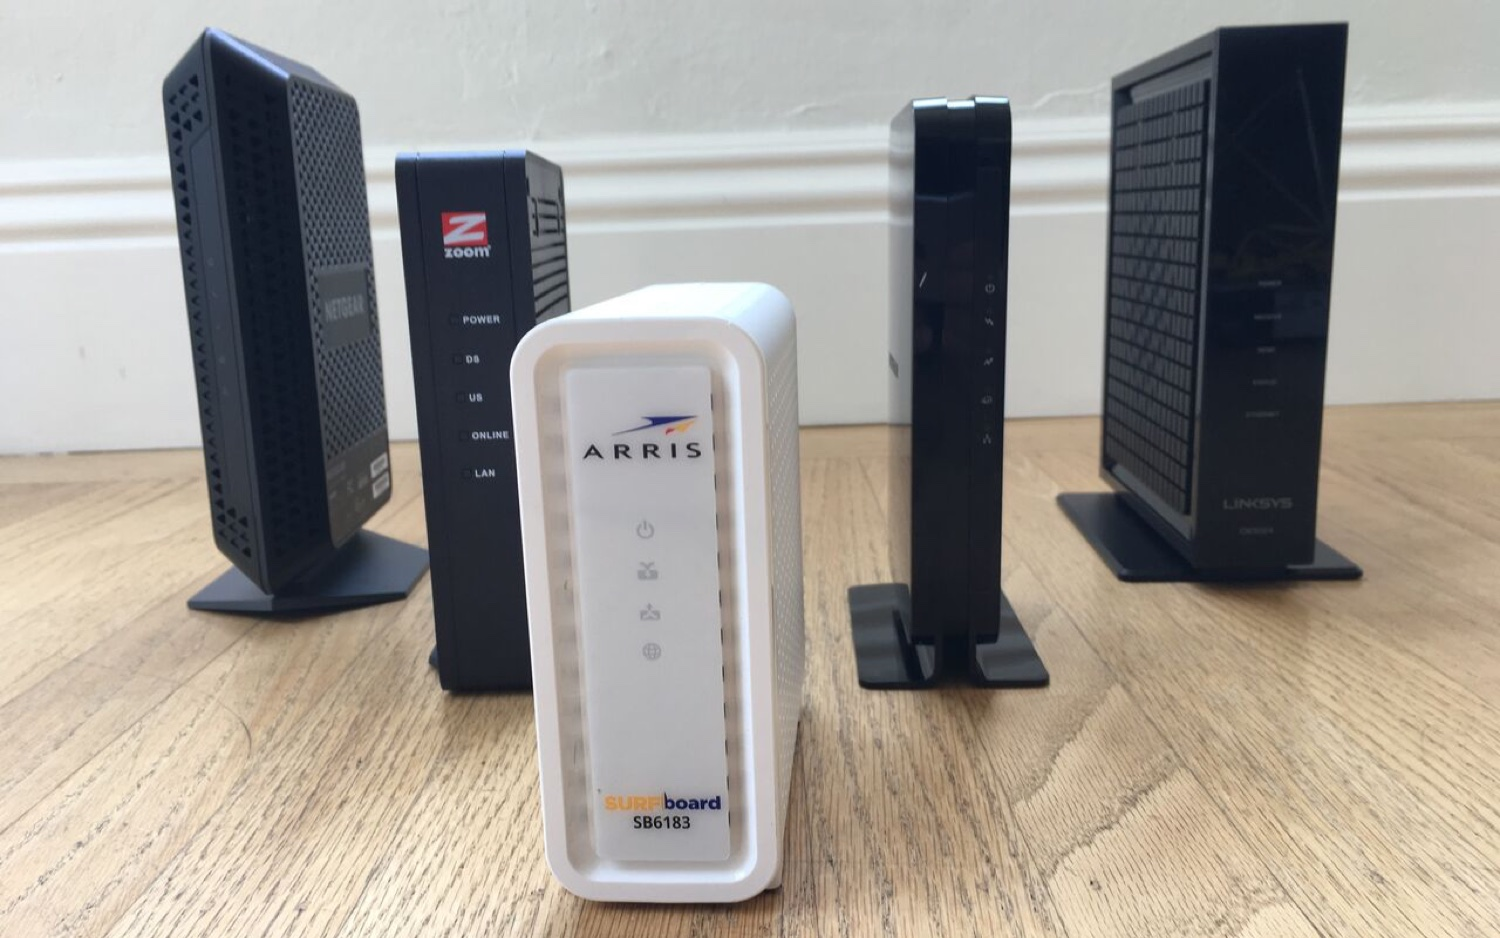 Differences between router and modem